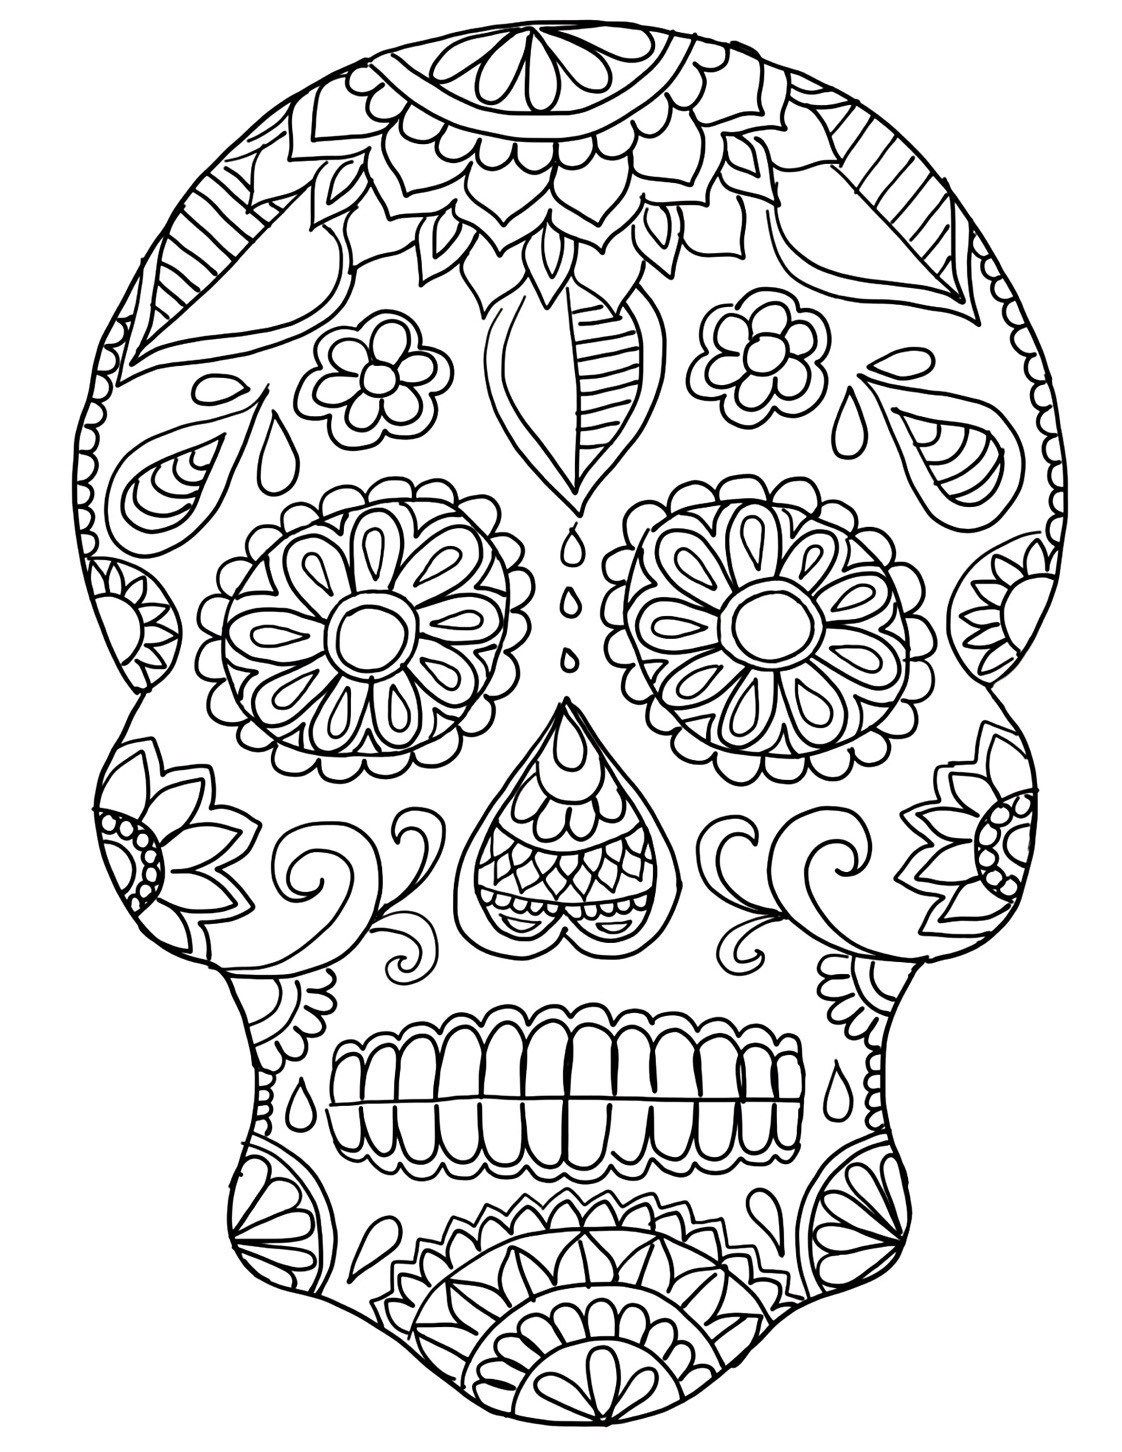 25+ Inspiration Photo of Couple Coloring Pages #adultcoloringpages